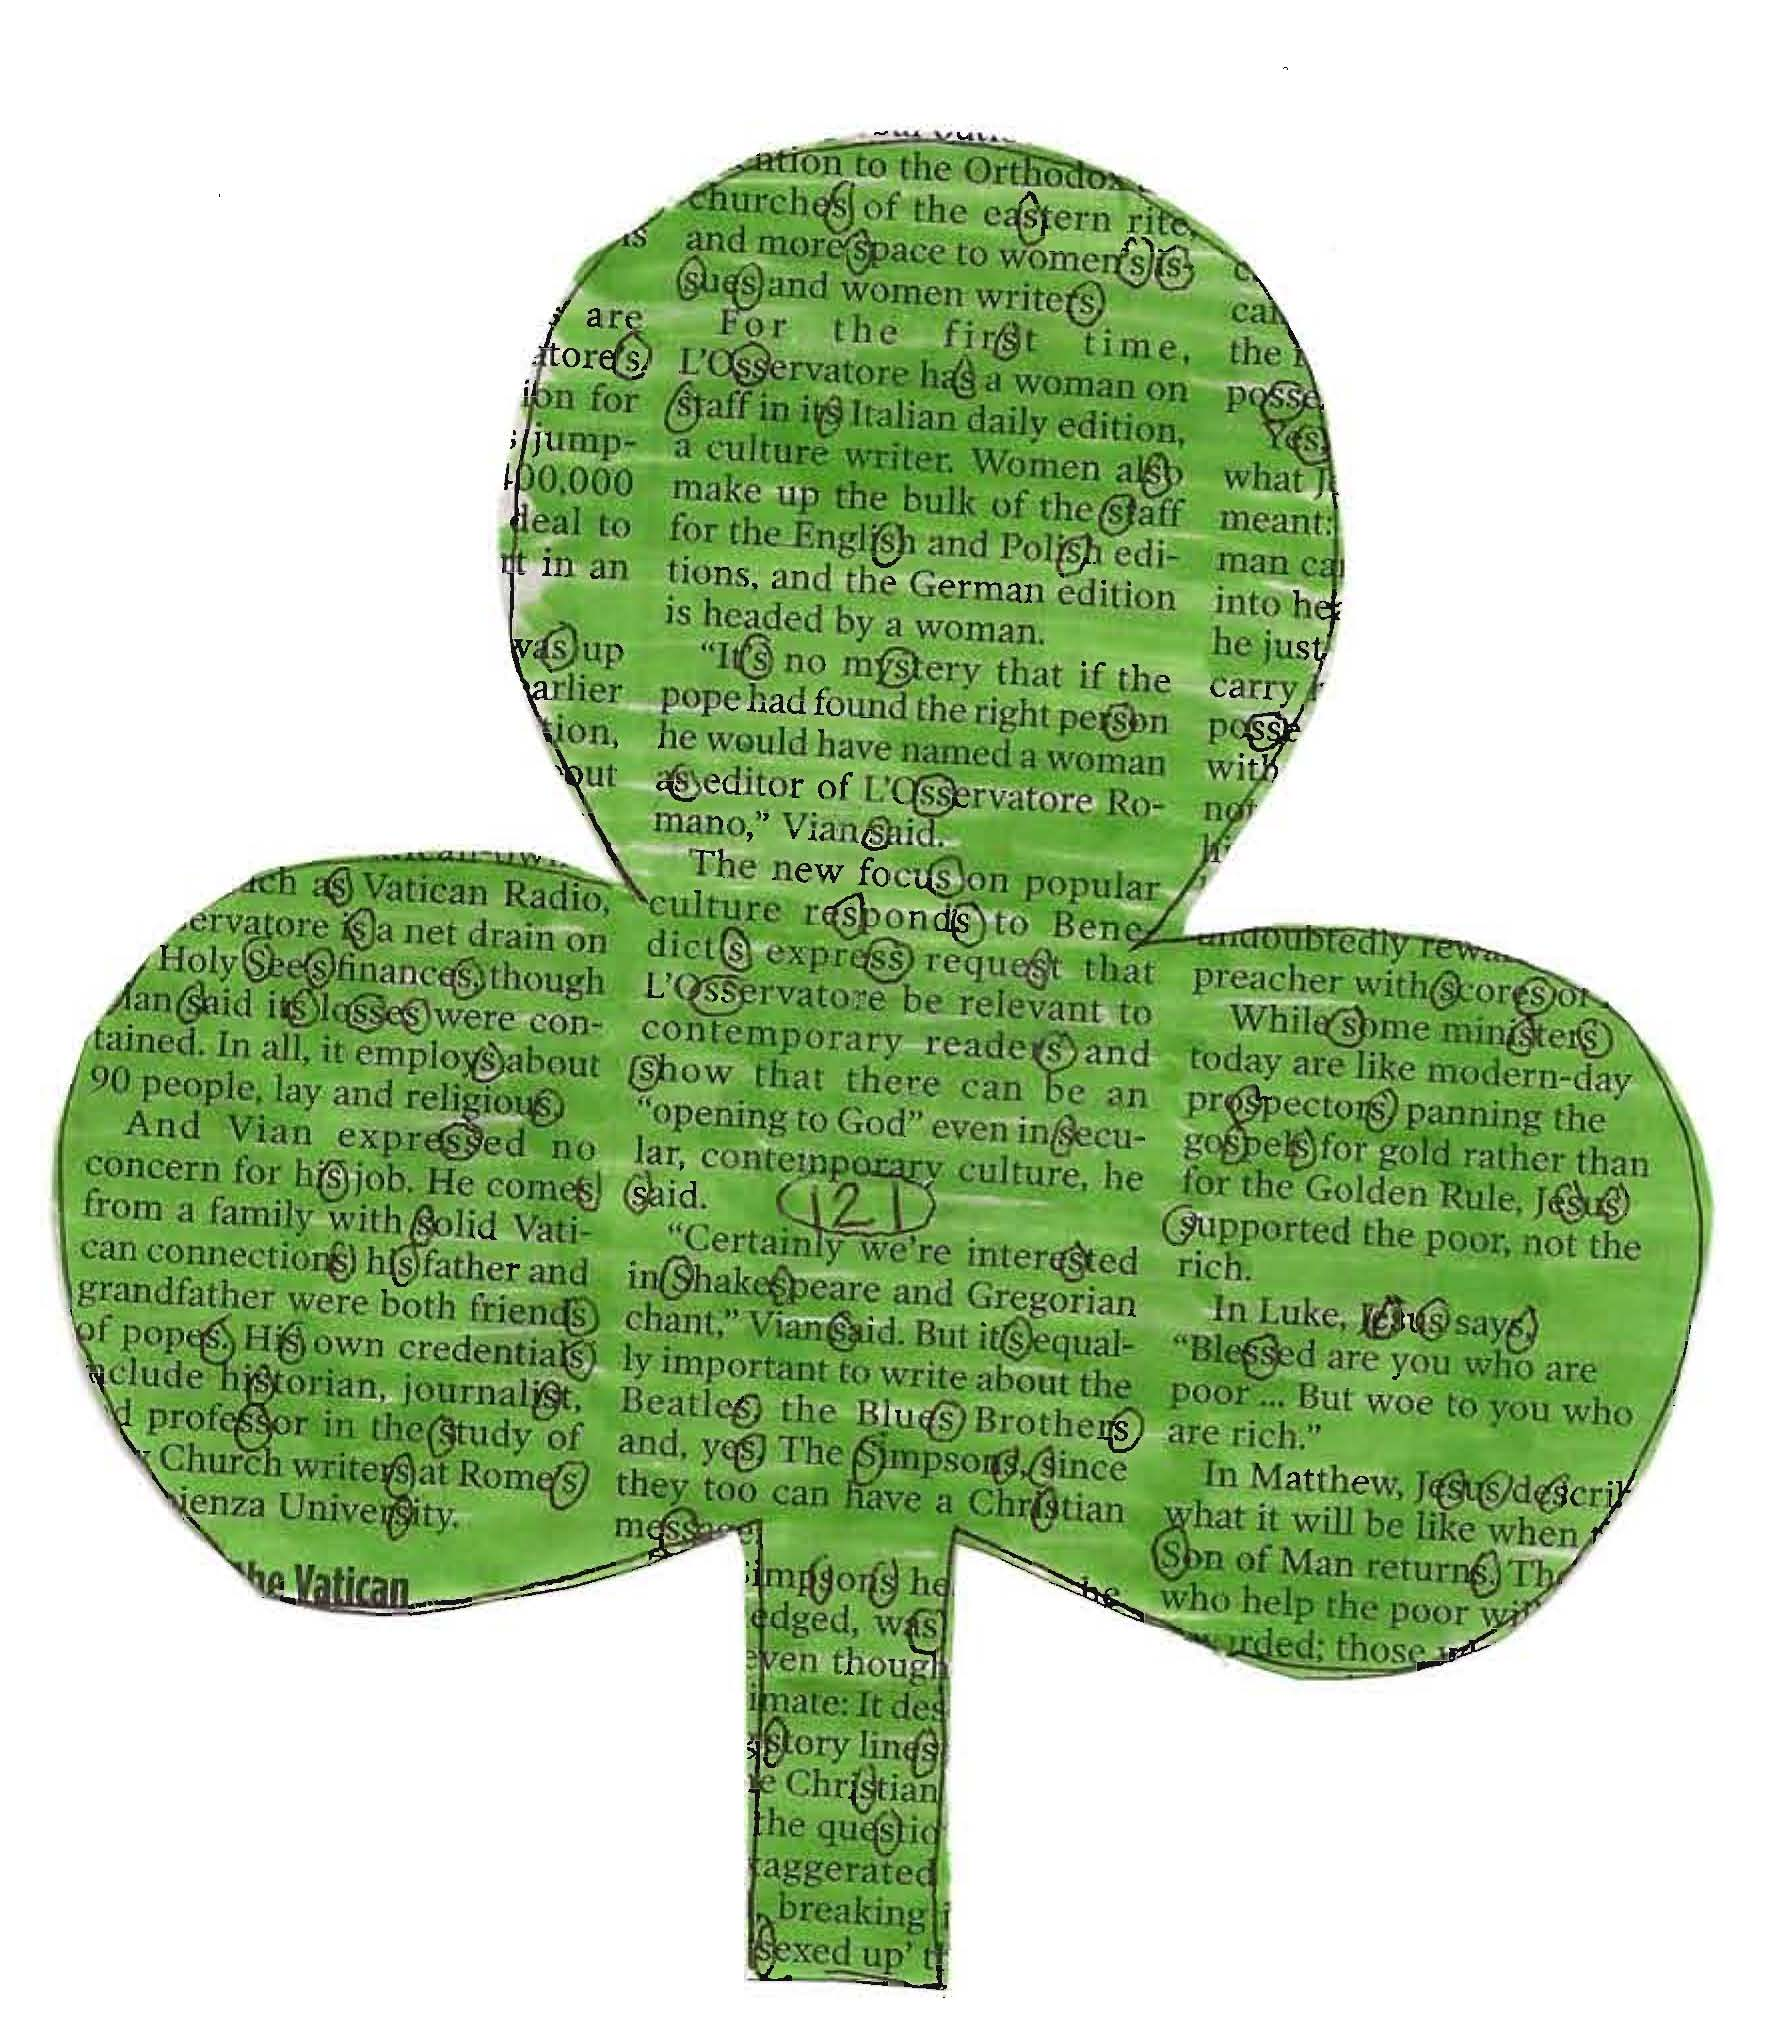 Newsprint shamrock, March art projects for kids, St. Patrick's Day ideas